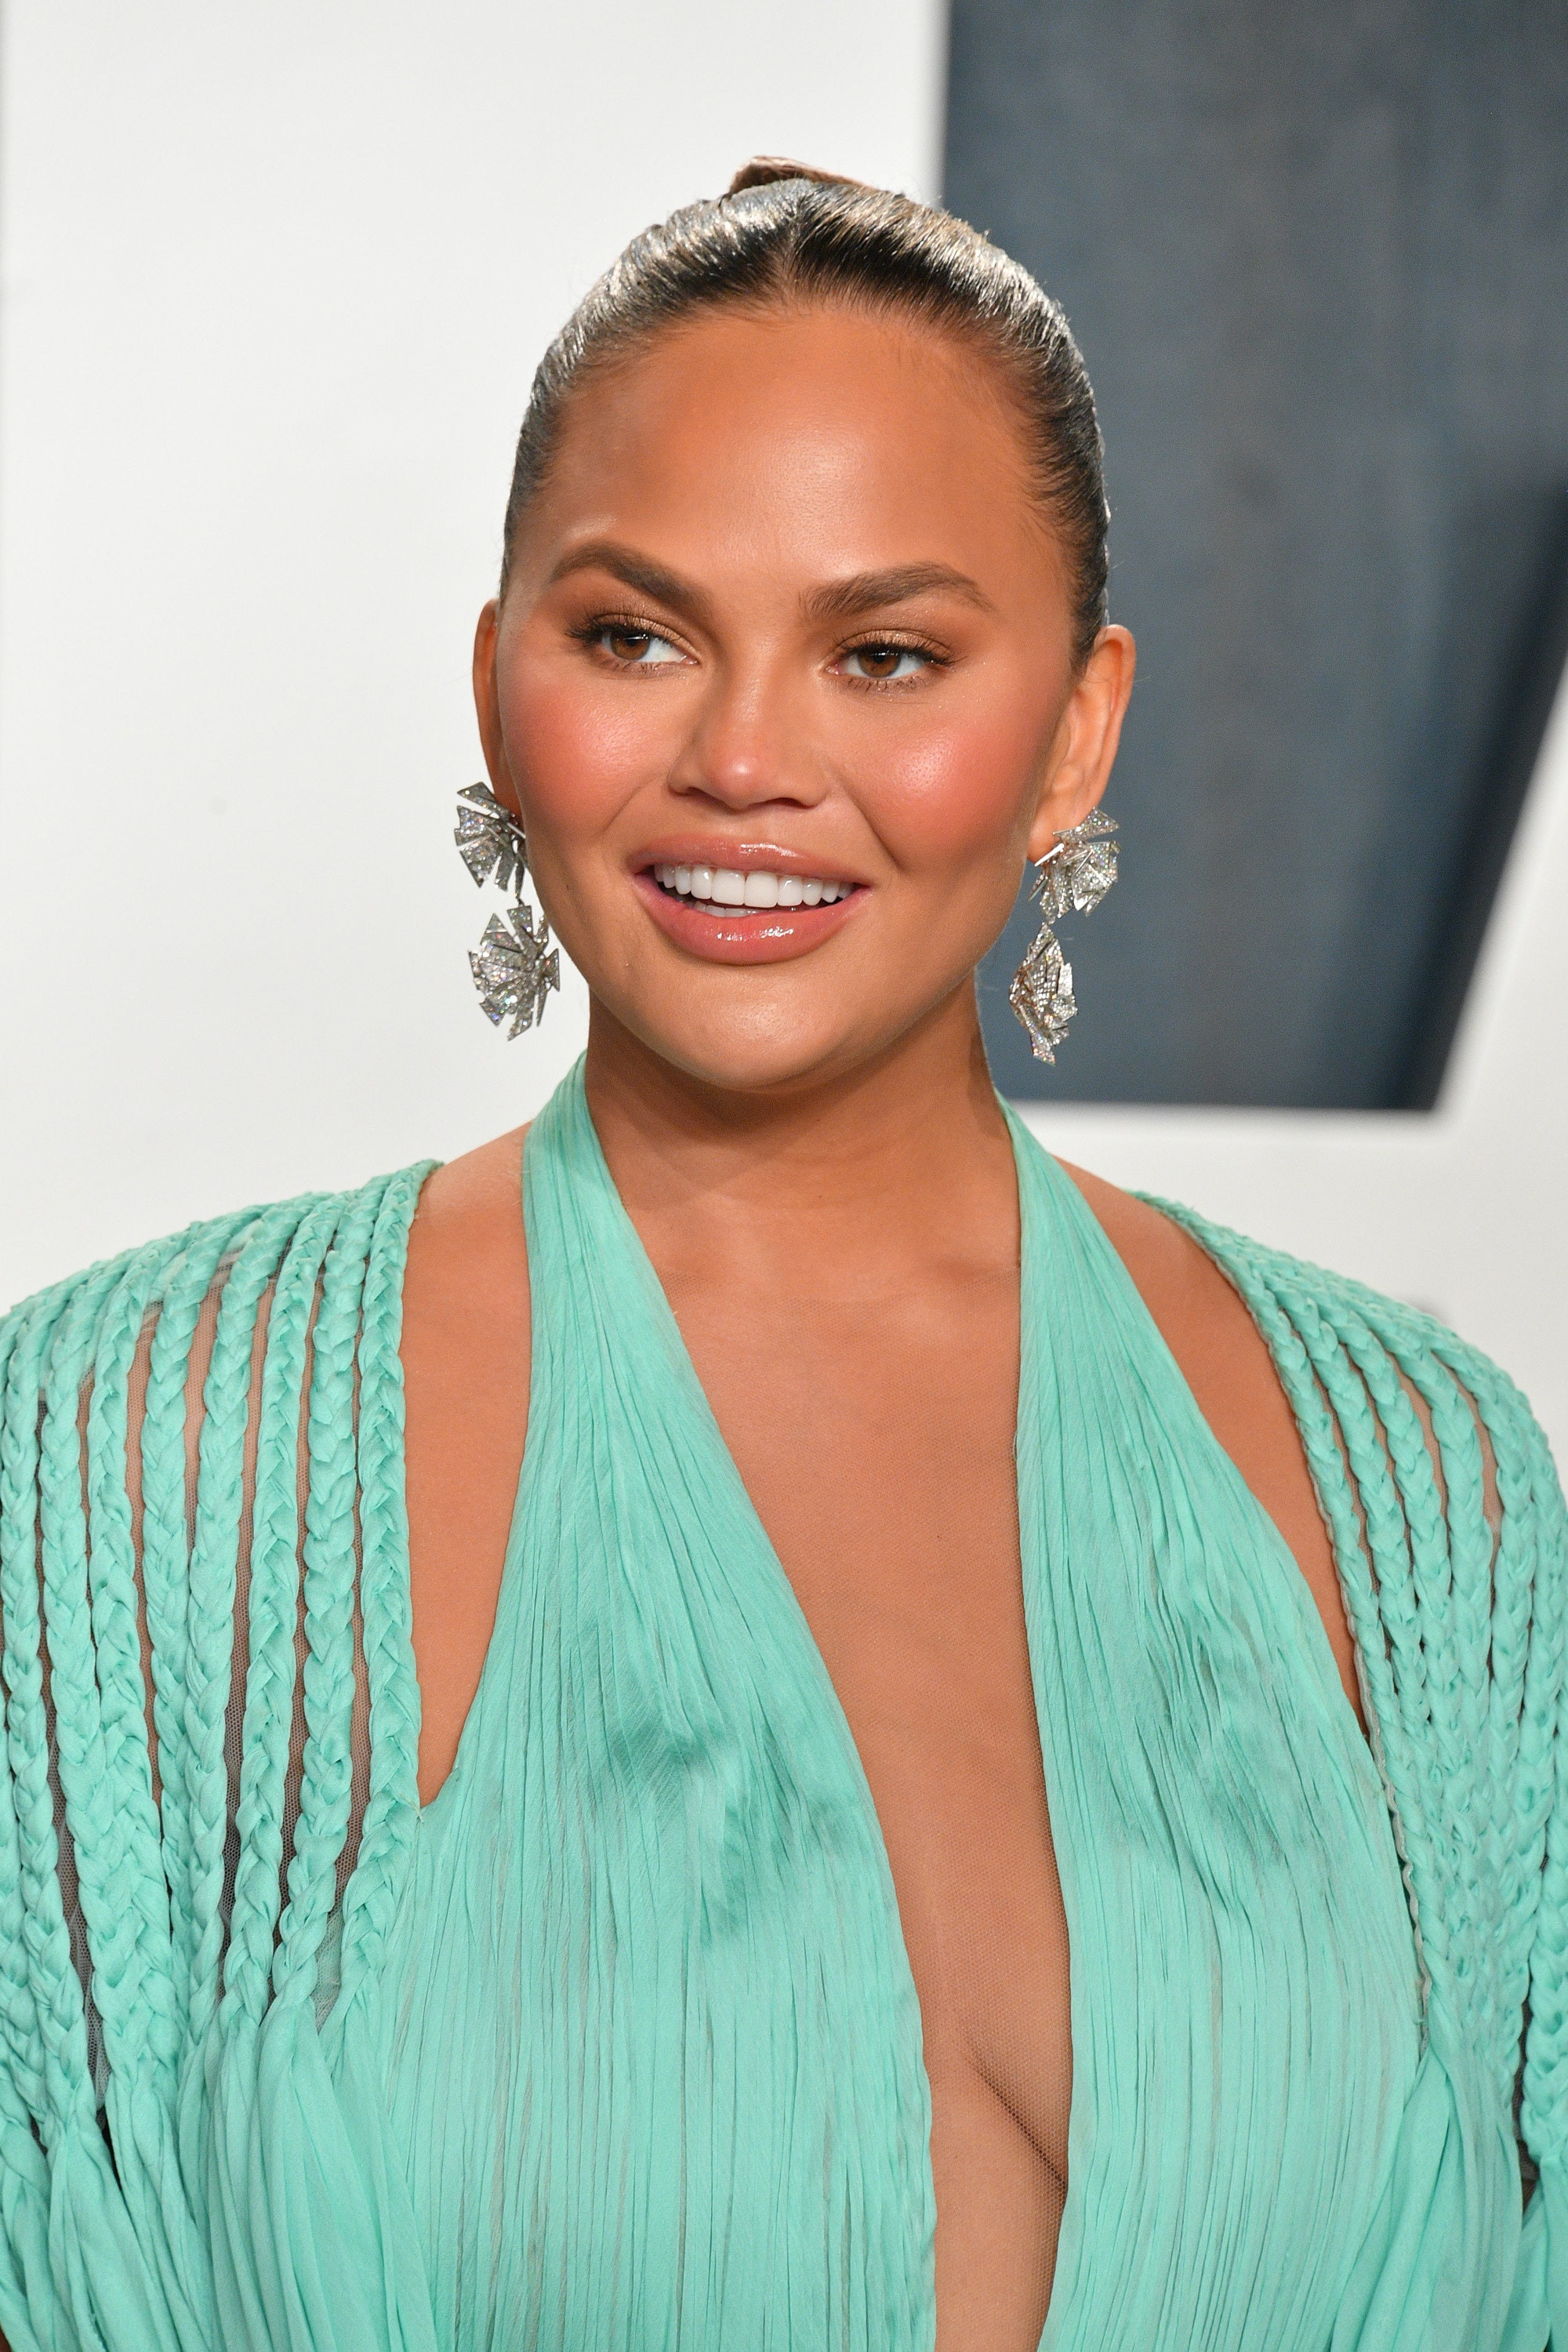 Chrissy Teigen reveals she had fat removed from her cheeks